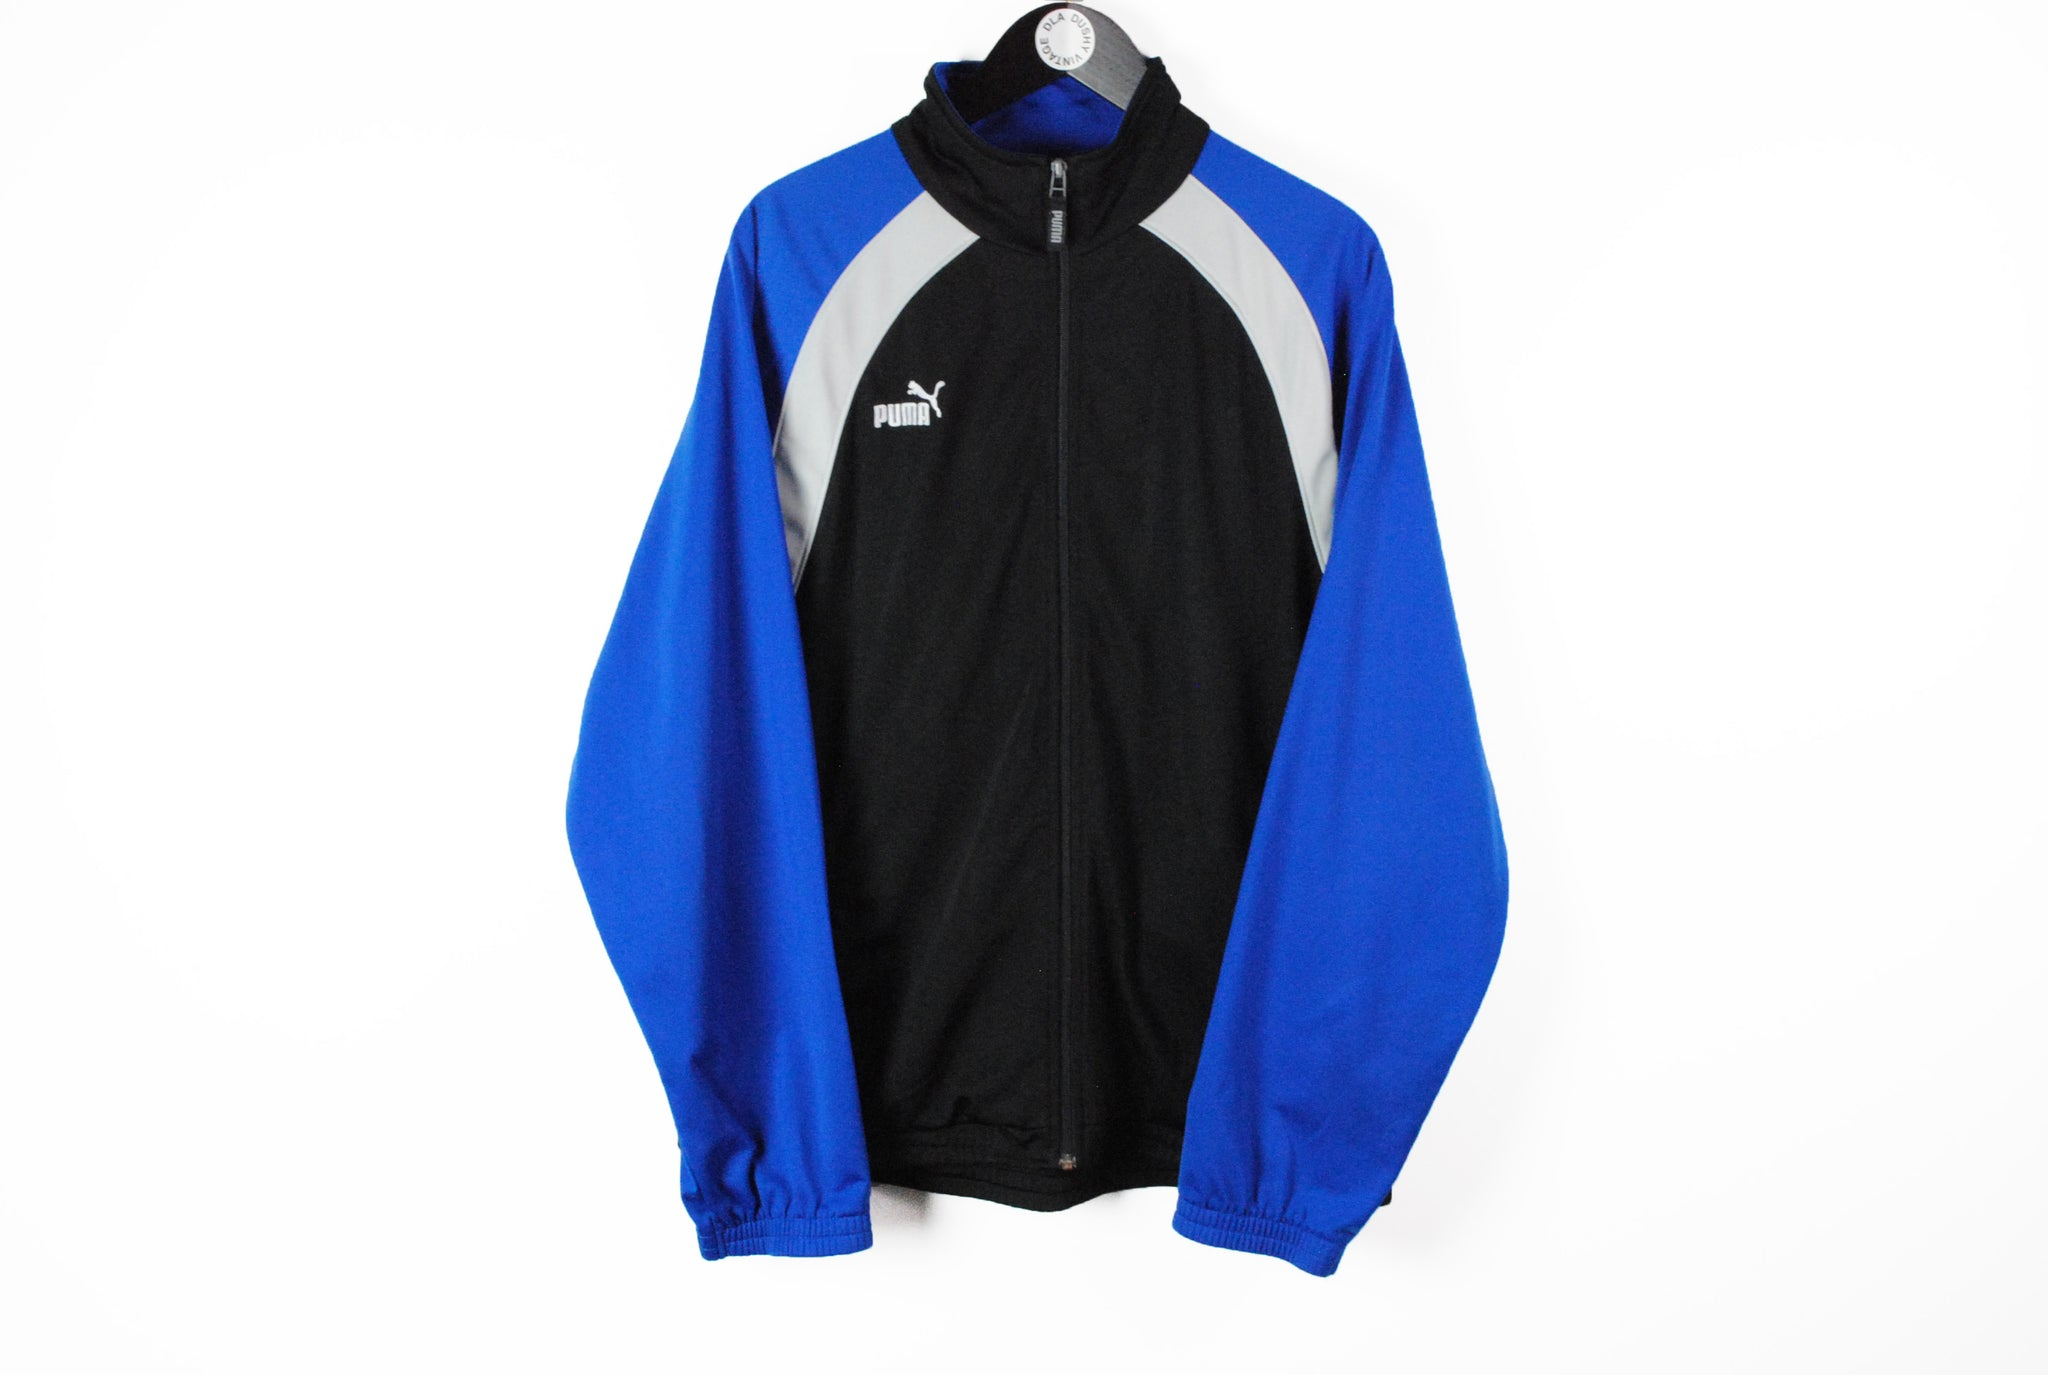 Vintage Puma Track Jacket Large black blue athletic 90s sport wear style